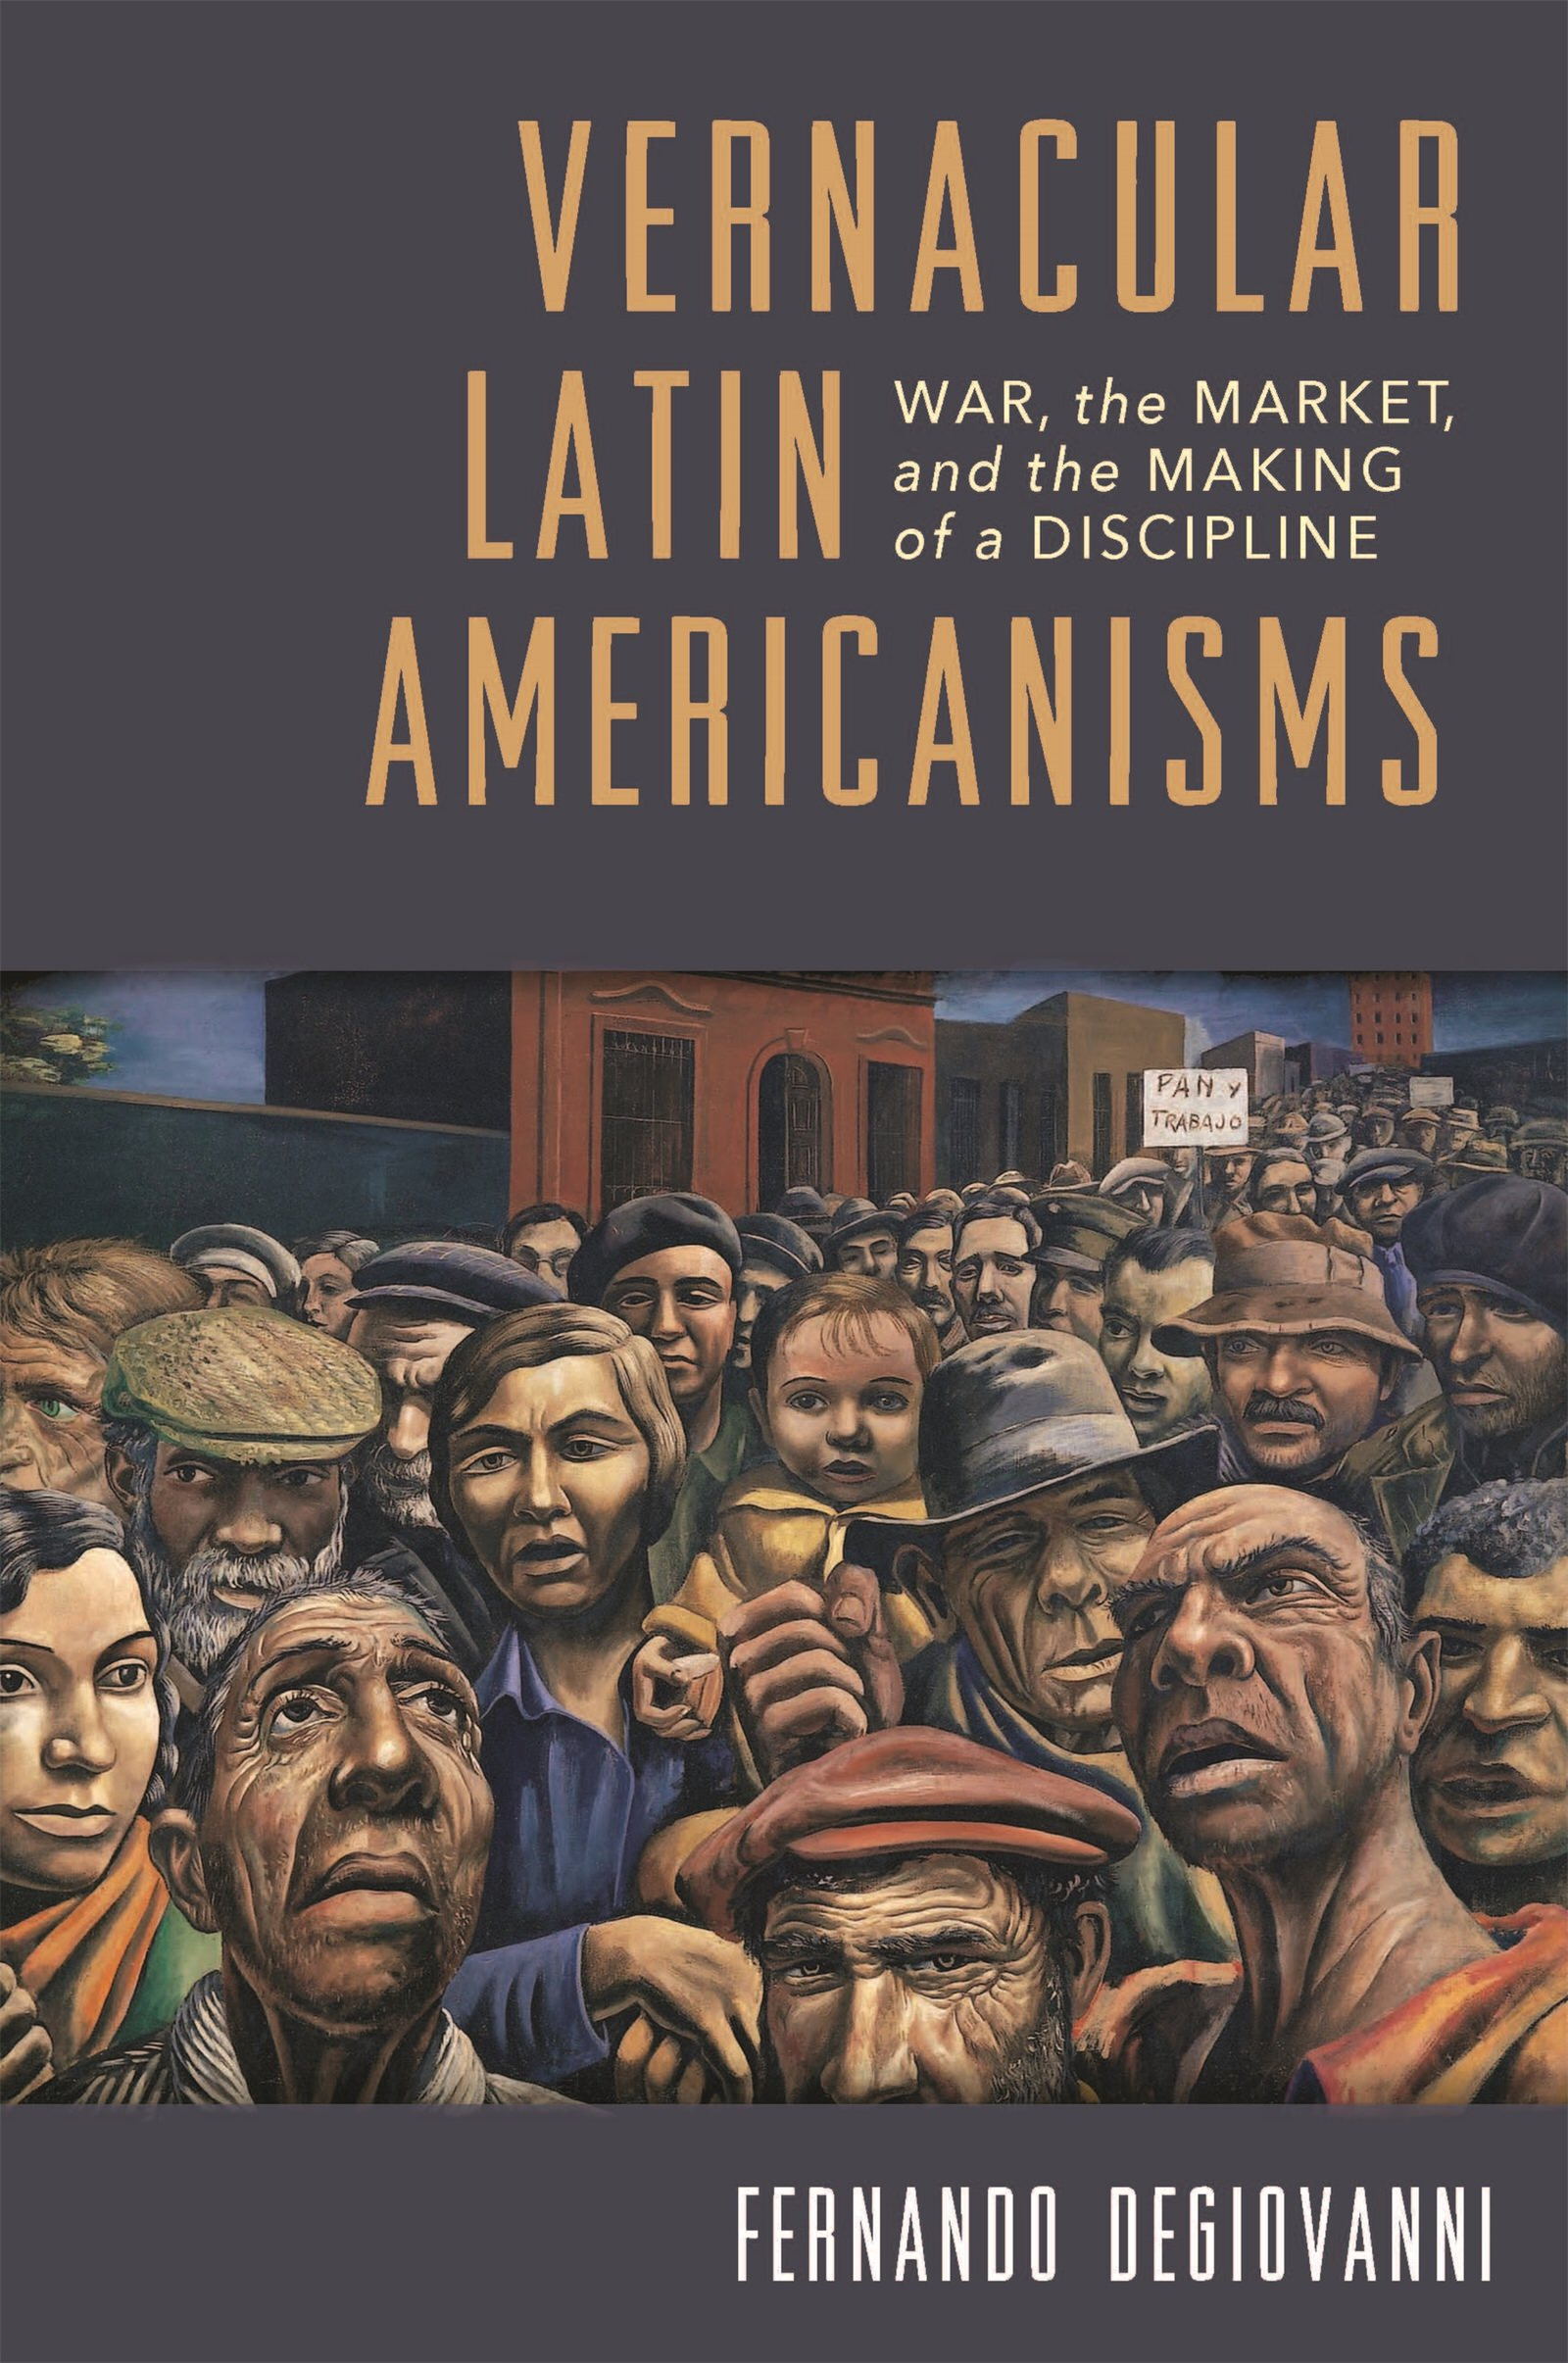 image from Vernacular Latin Americanisms: War, the Market, and the Making of a Discipline, by Fernando Degiovanni